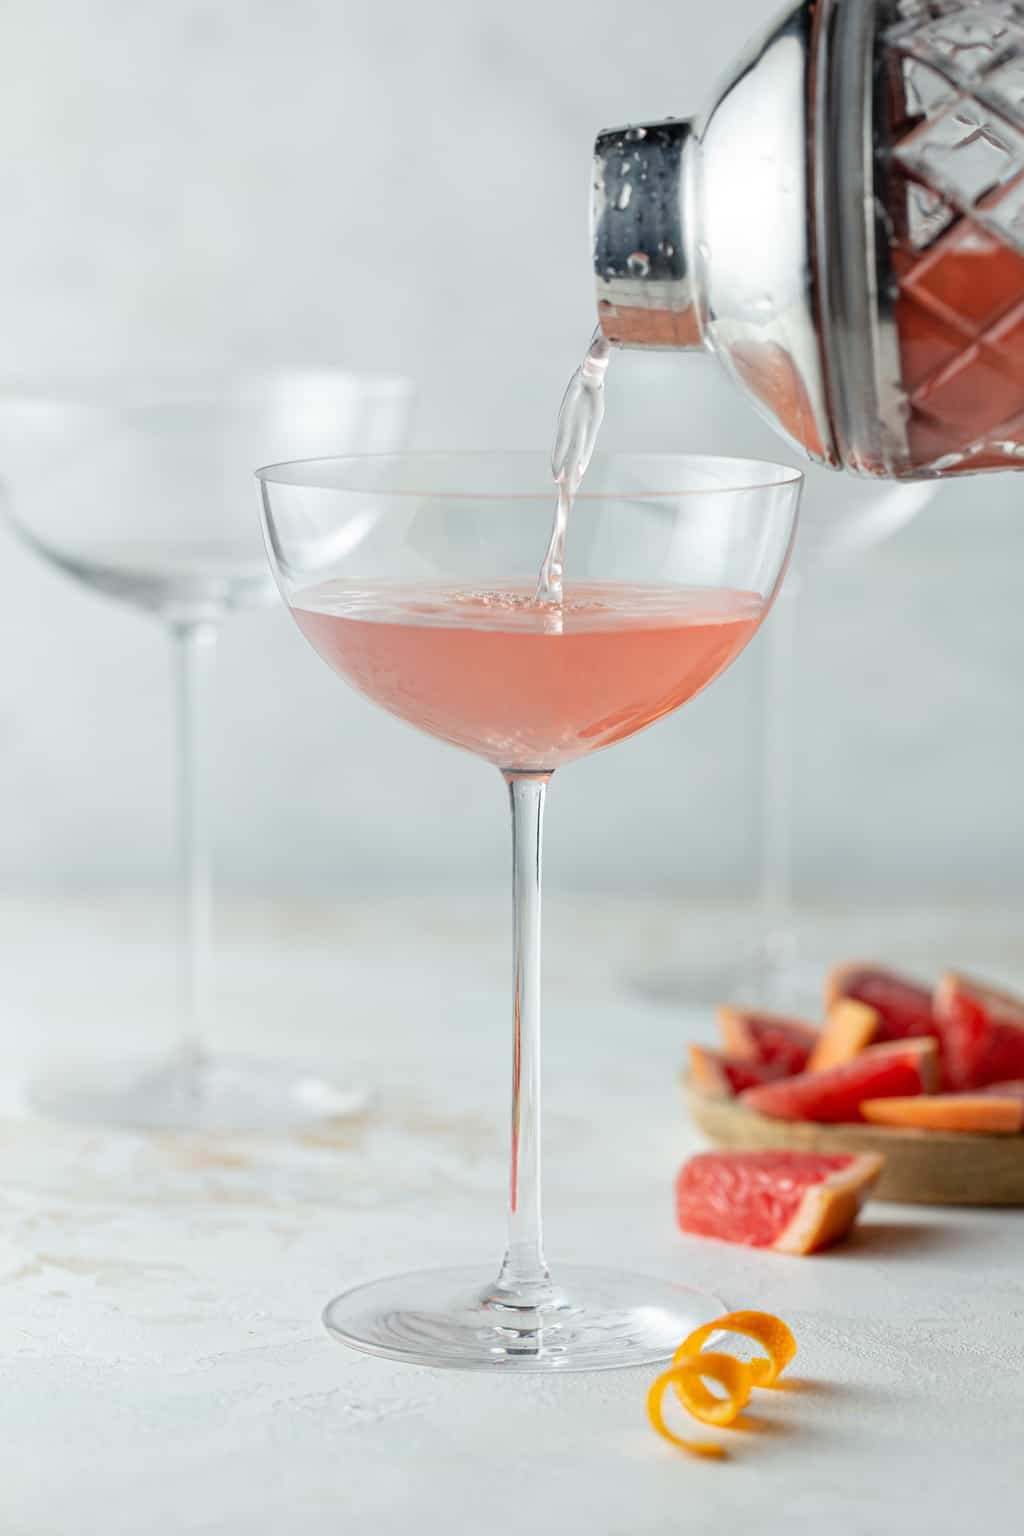 Grapefruit martini being poured into a tall coupe glass with fresh grapefruit wedges on the side.